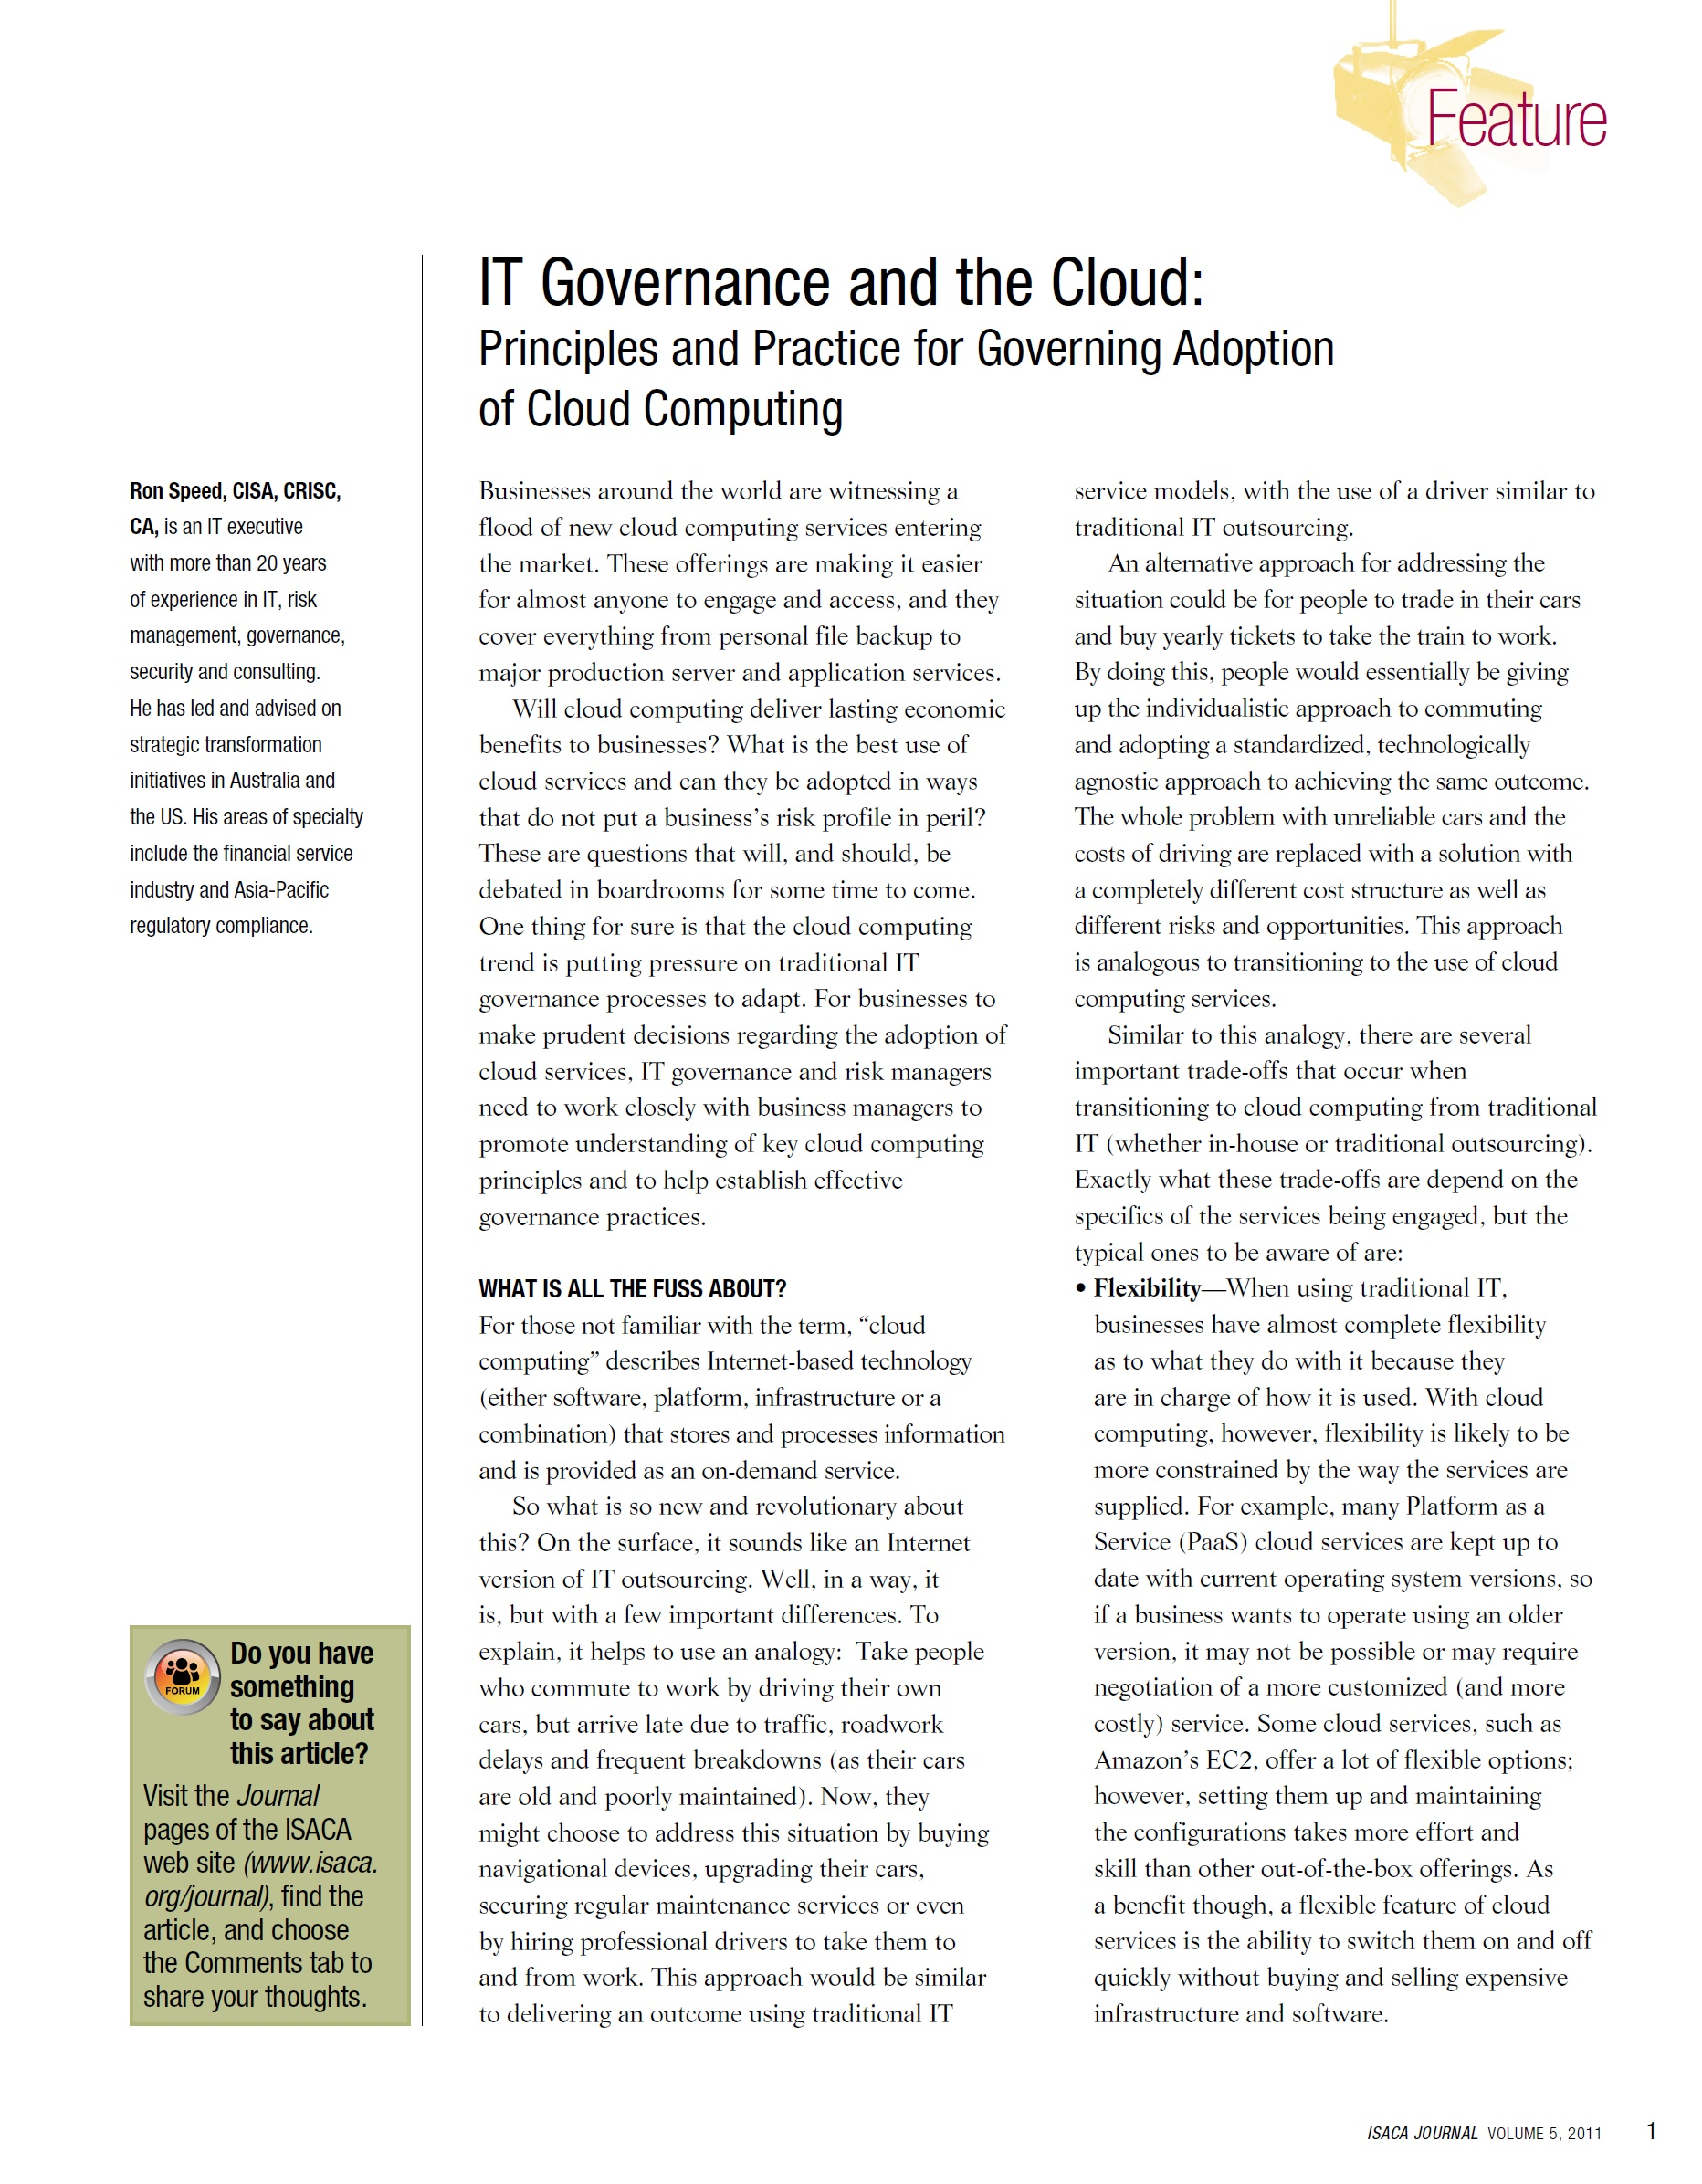 IT Governance and the Cloud:Principles and Practice for Governing Adoptionof Cloud Computing, ISACA, 2011